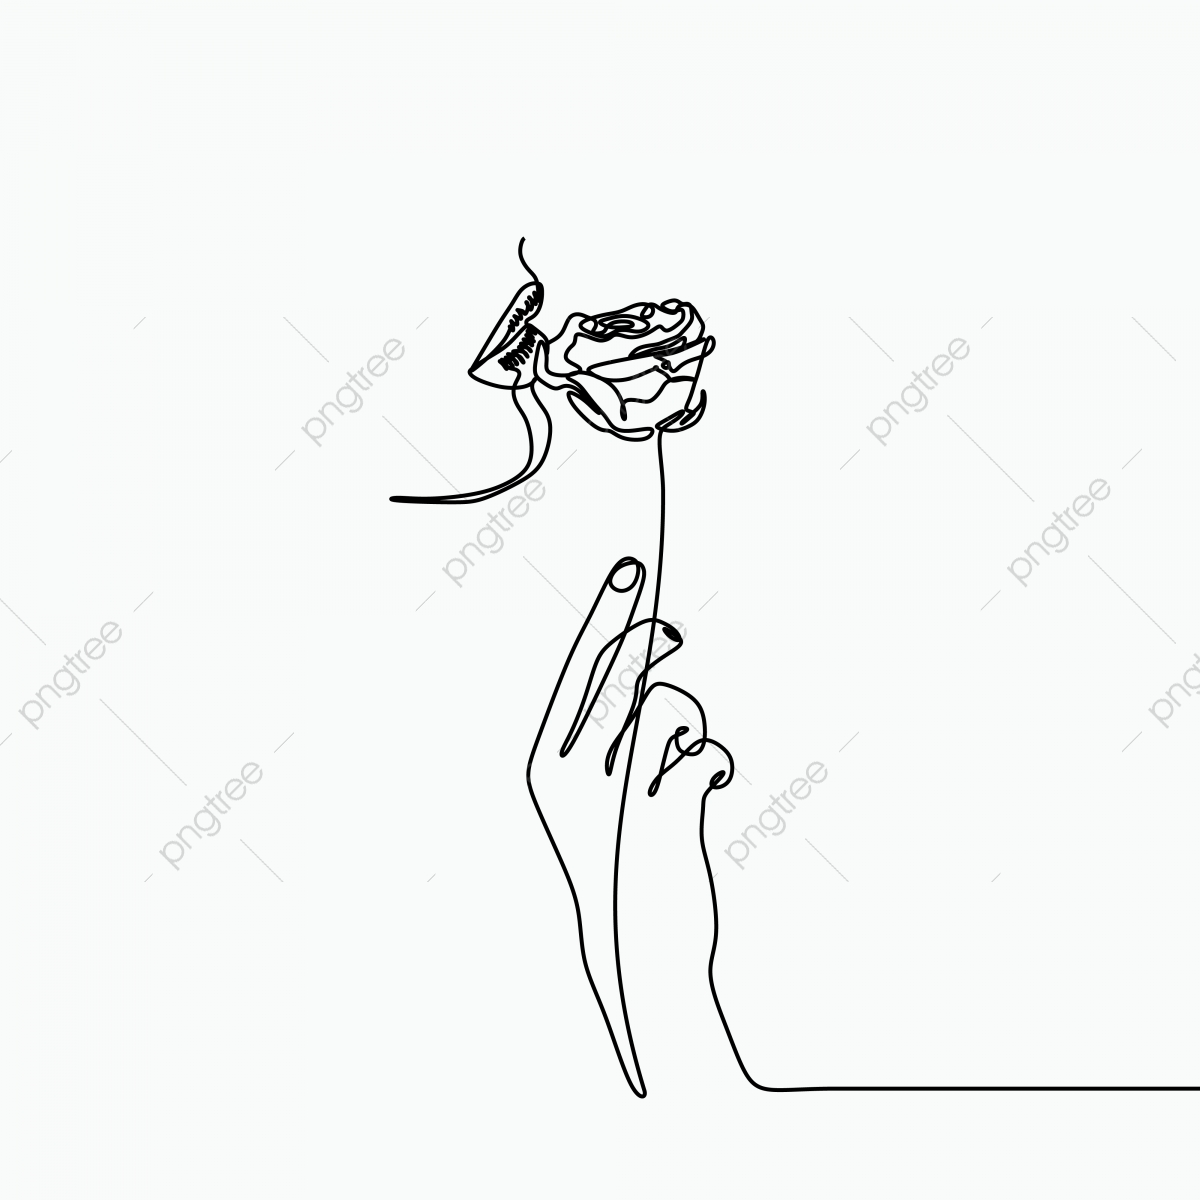 One line art drawing with a hand rose flower and girl mouth